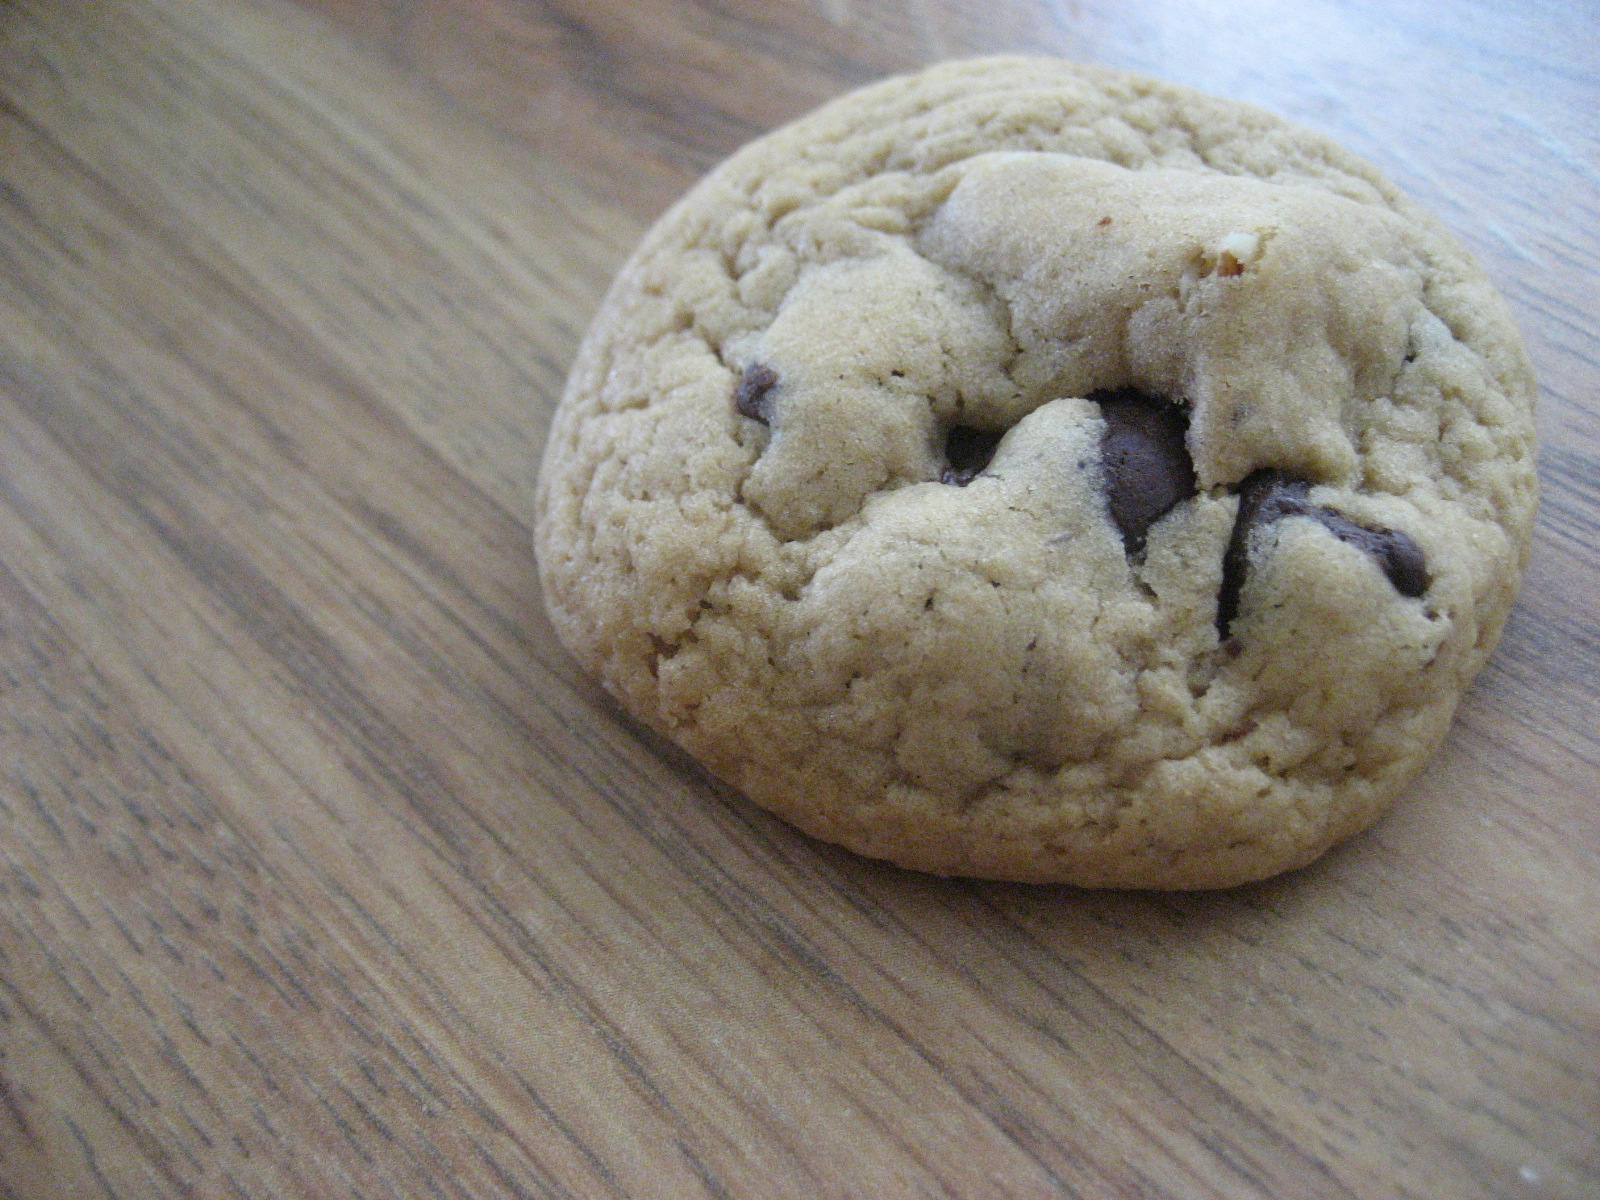 Loner chocolate chip cookie on wood-grain surface.